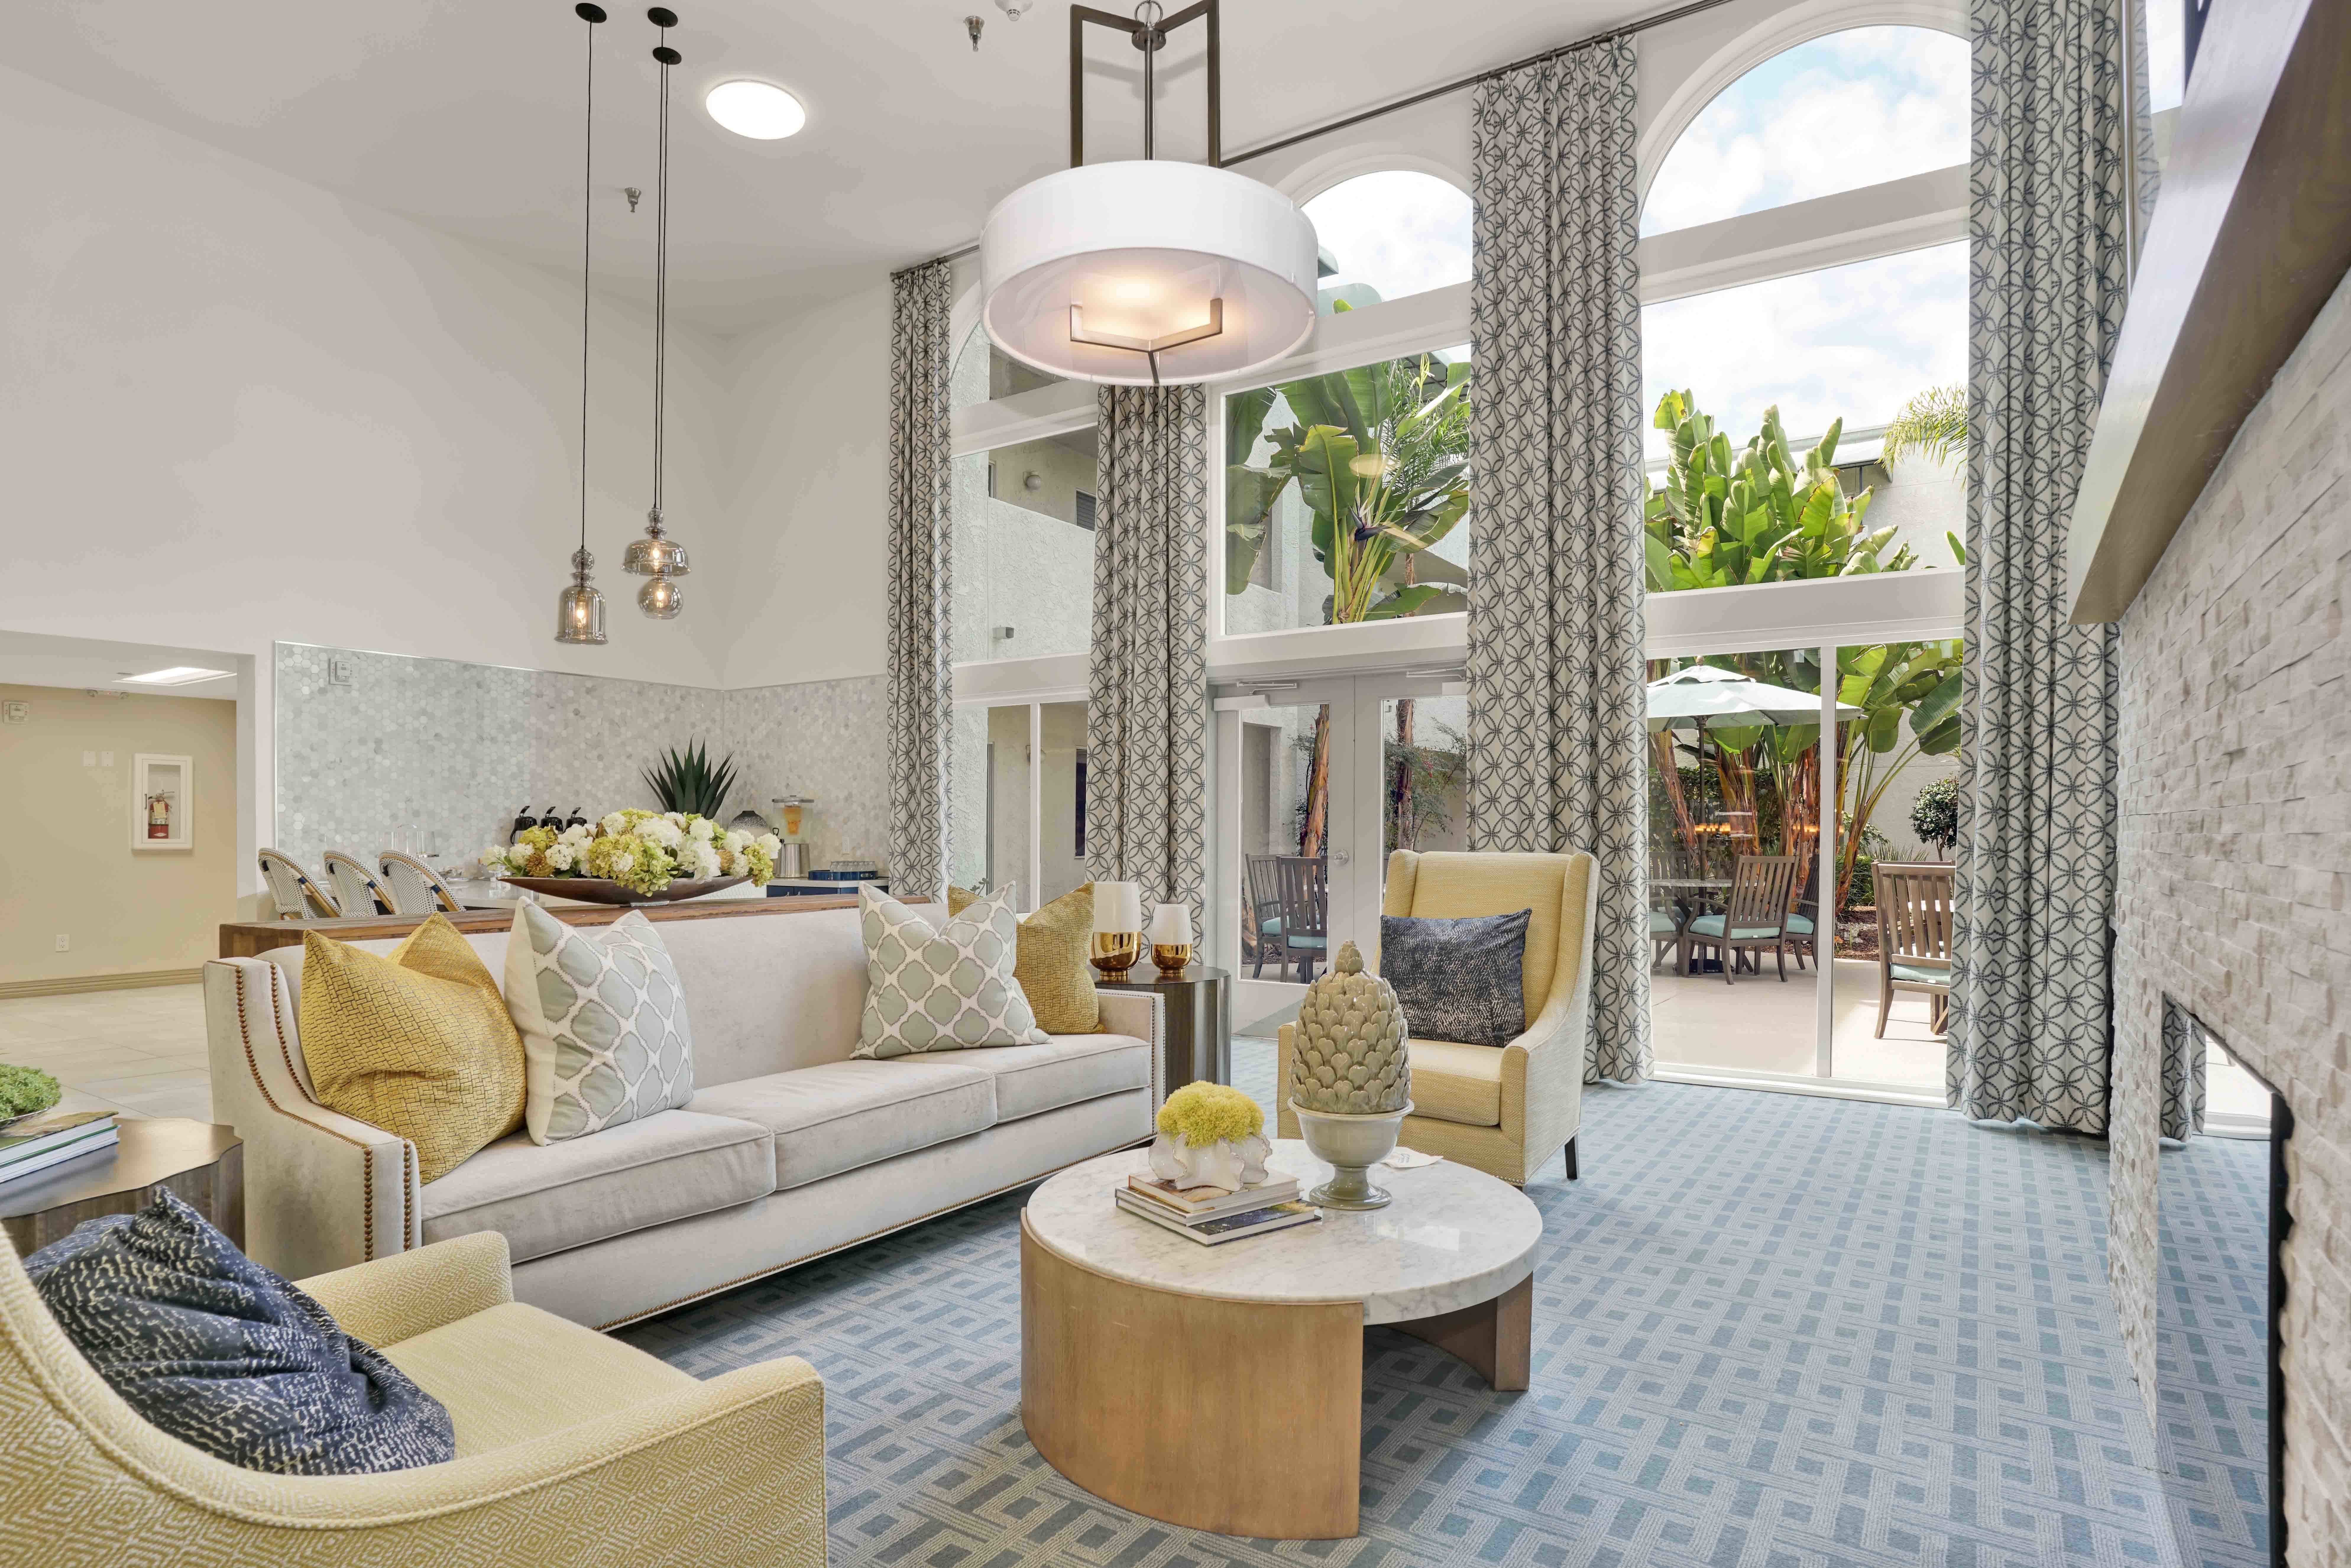 Senior living in Costa Mesa, CA is just right for you